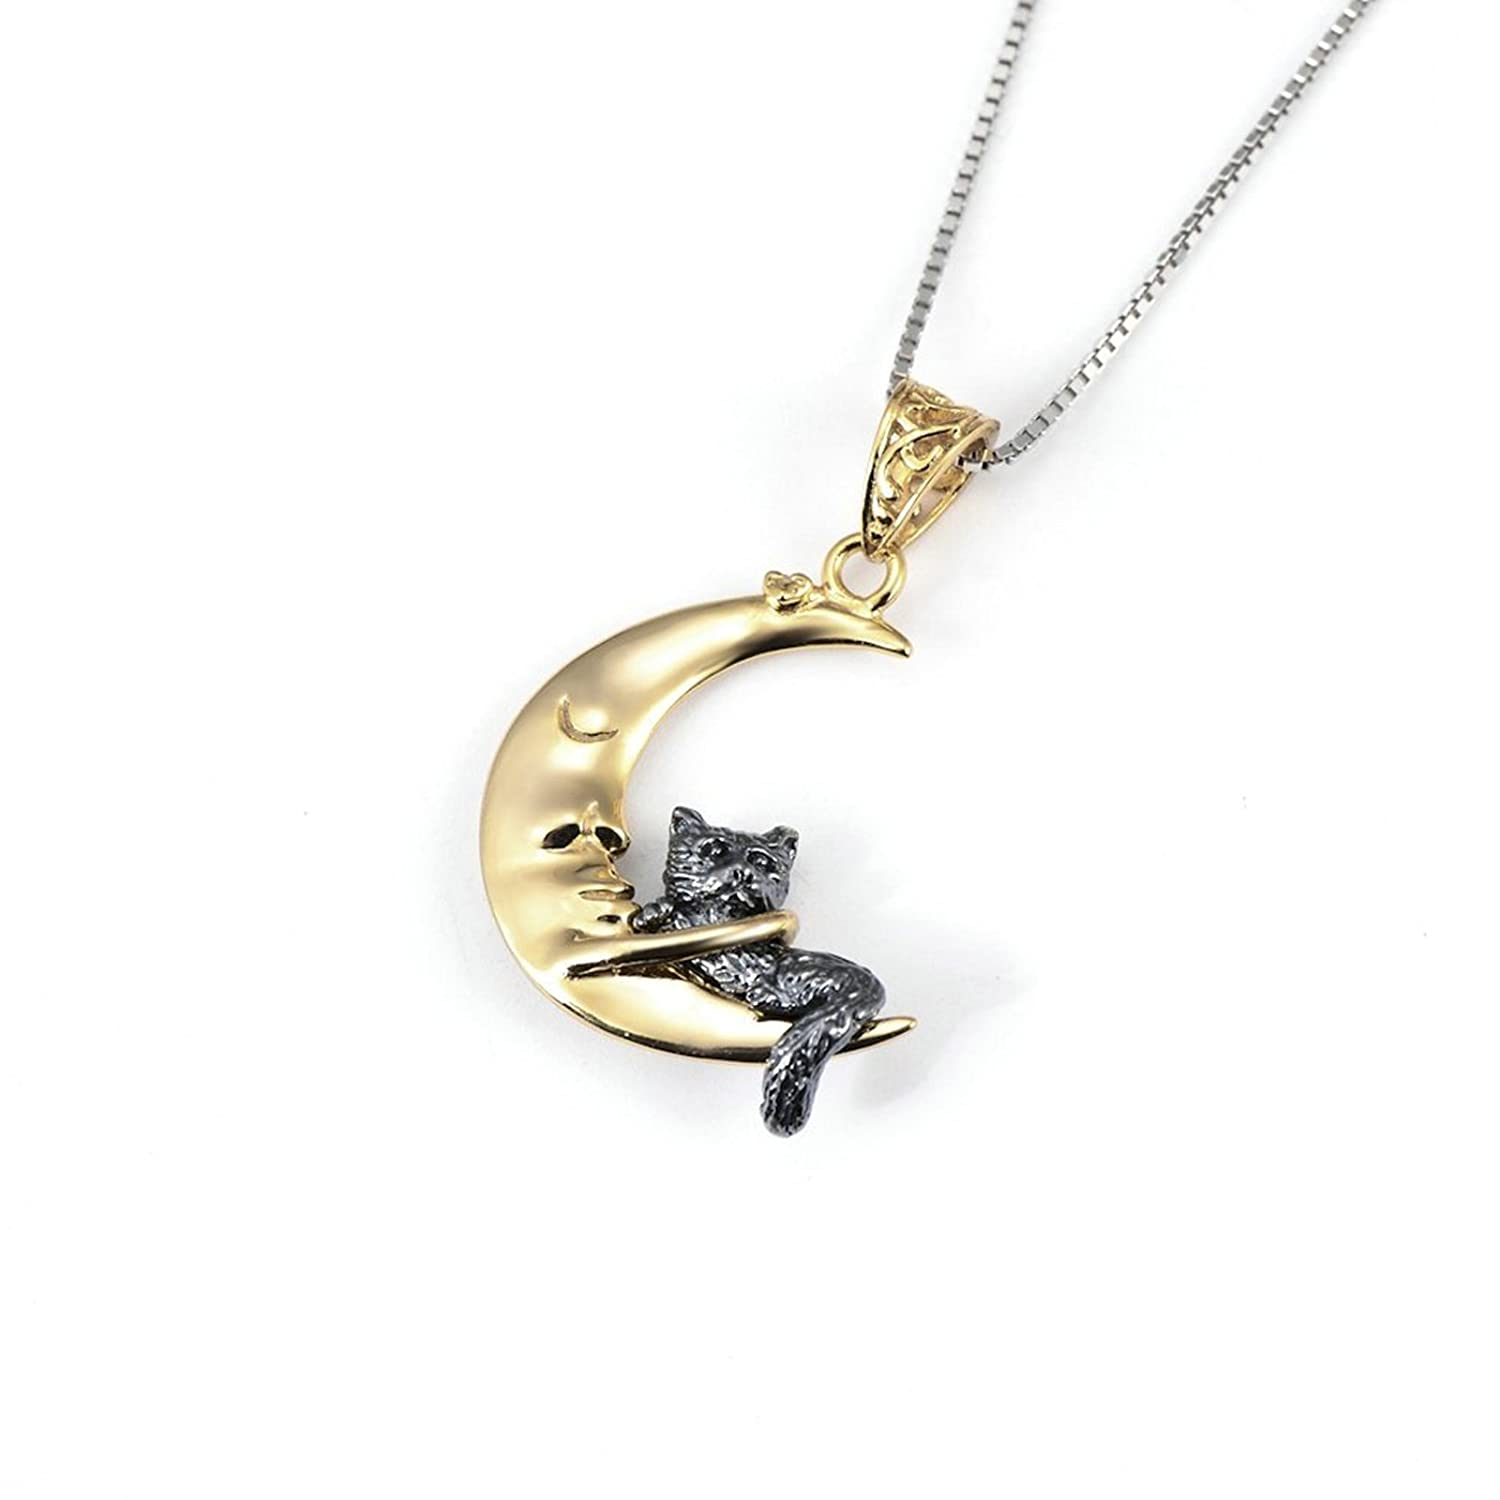 Aooaz Jewelry Silver Plated Three Tone Inspirational Animal Cat on Moon Crescent Pendant Necklace 18